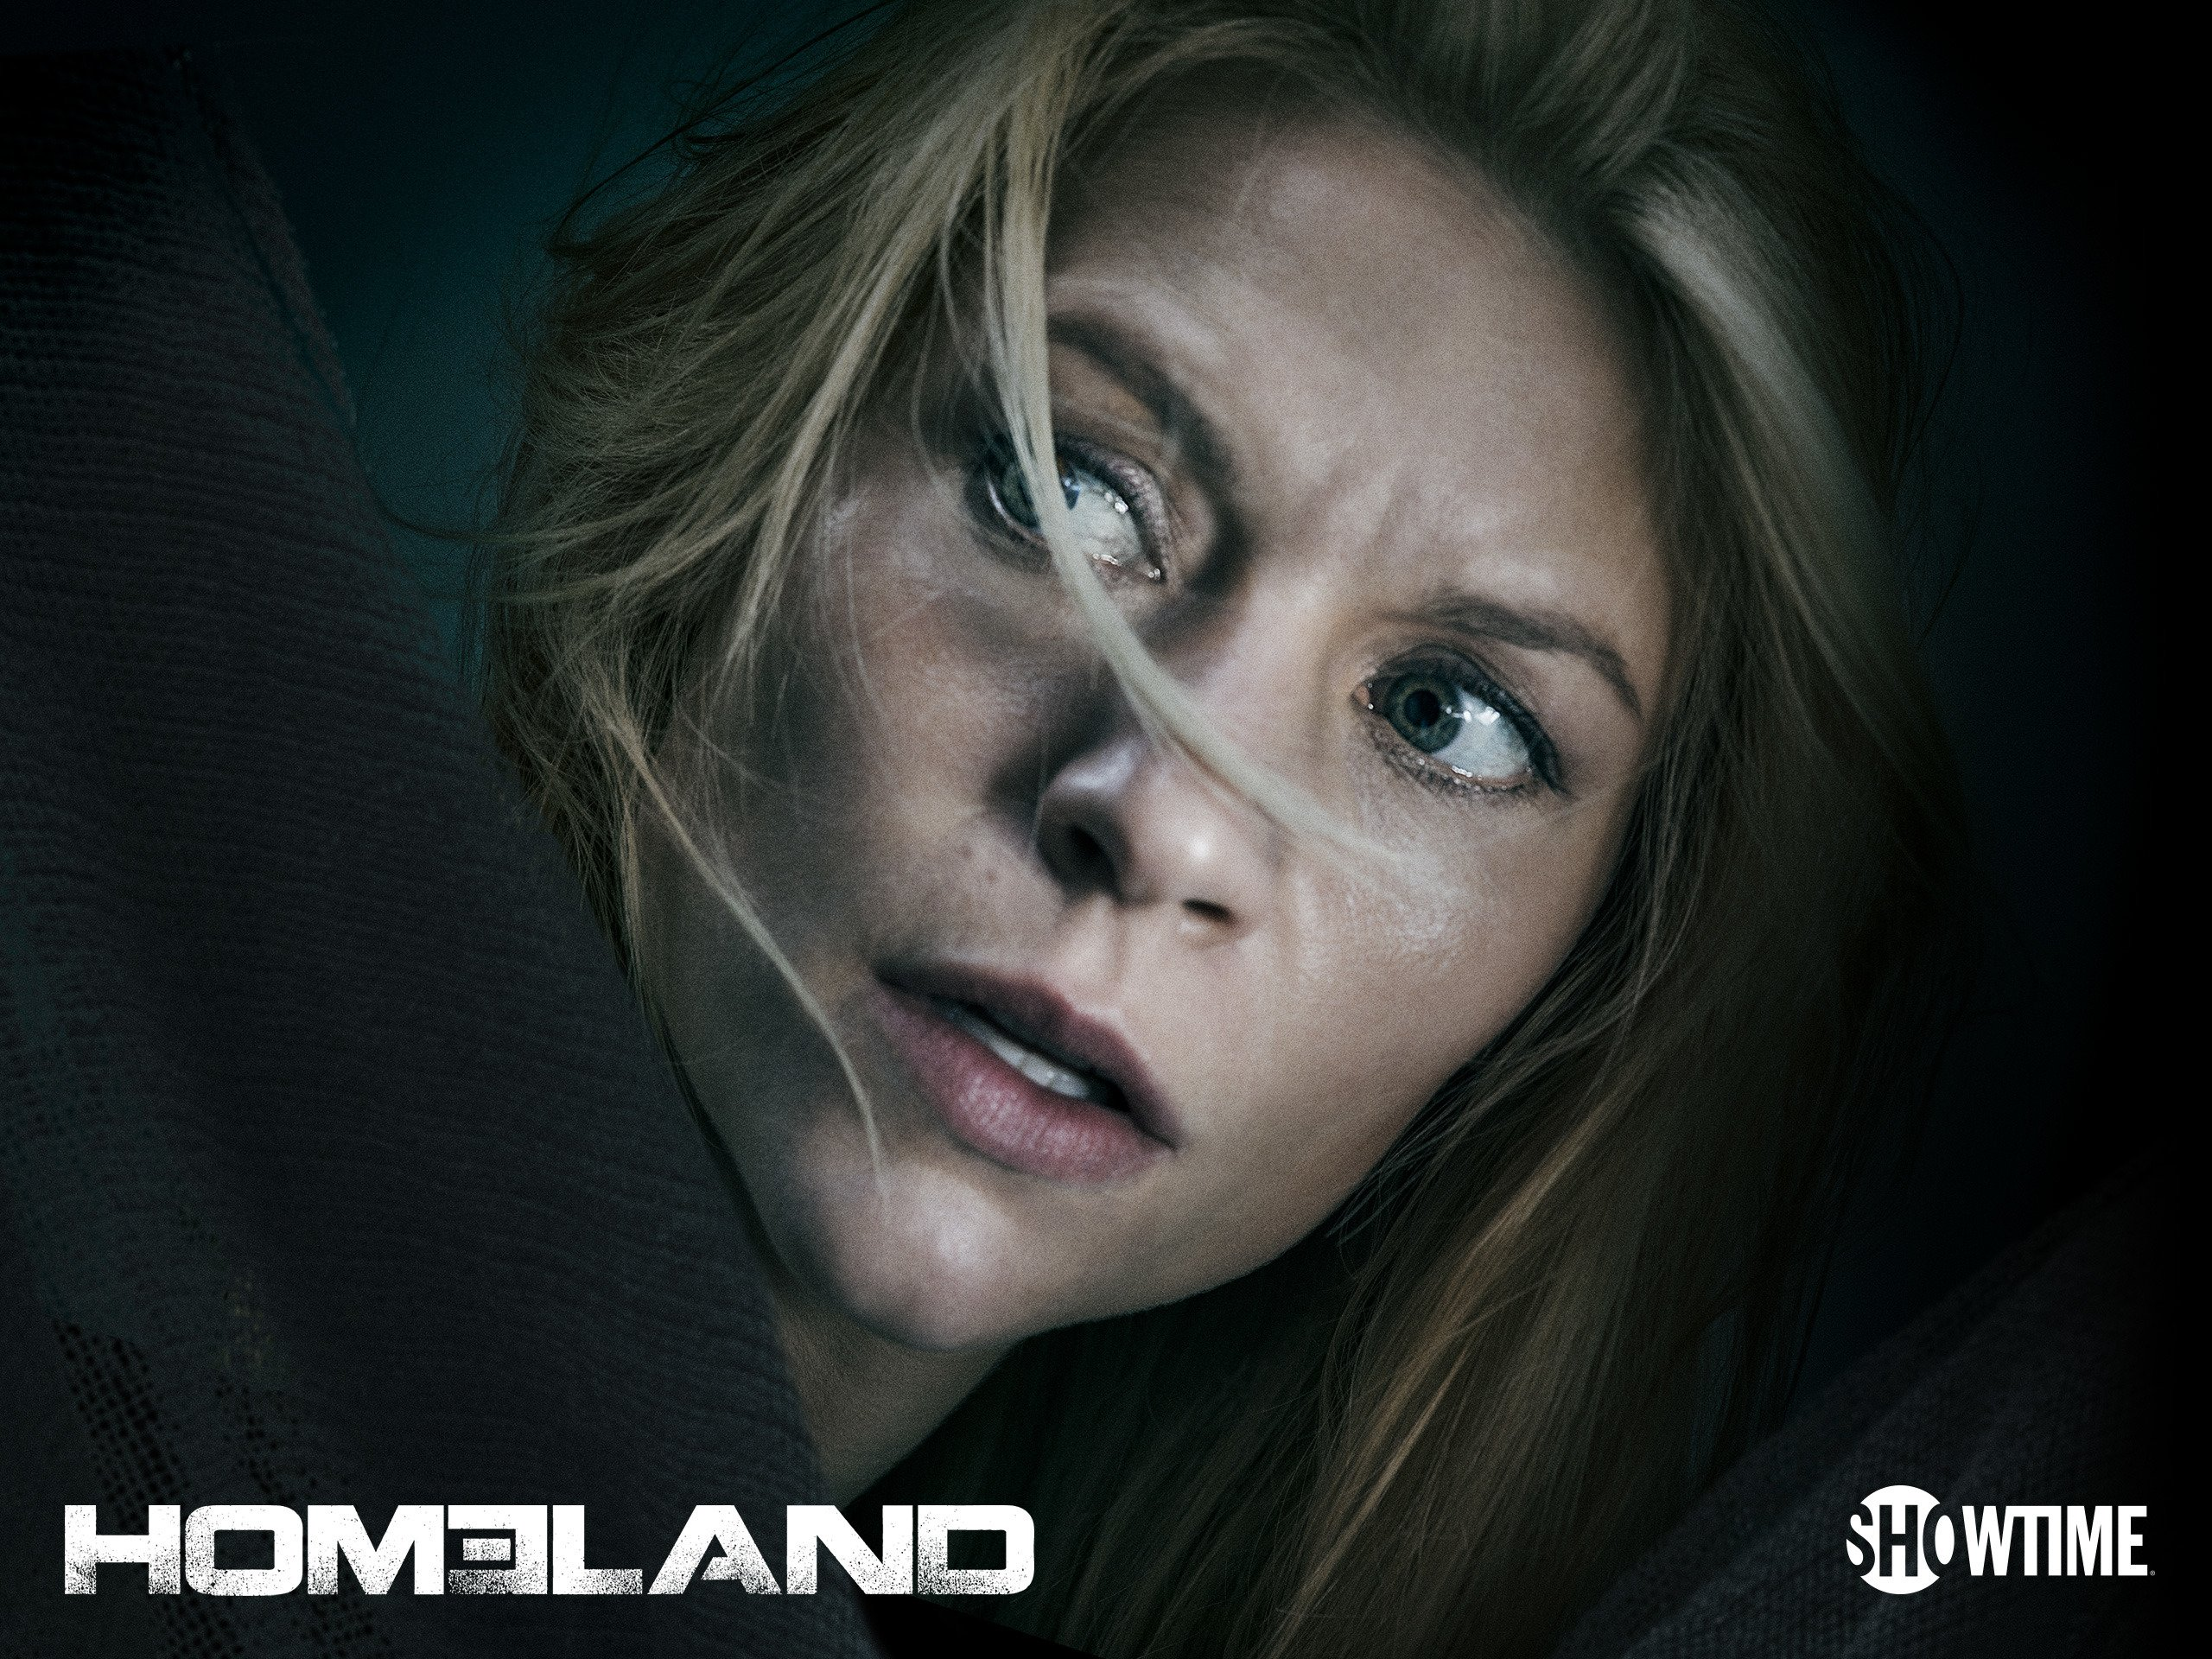 Amazon.com: Homeland Season 7